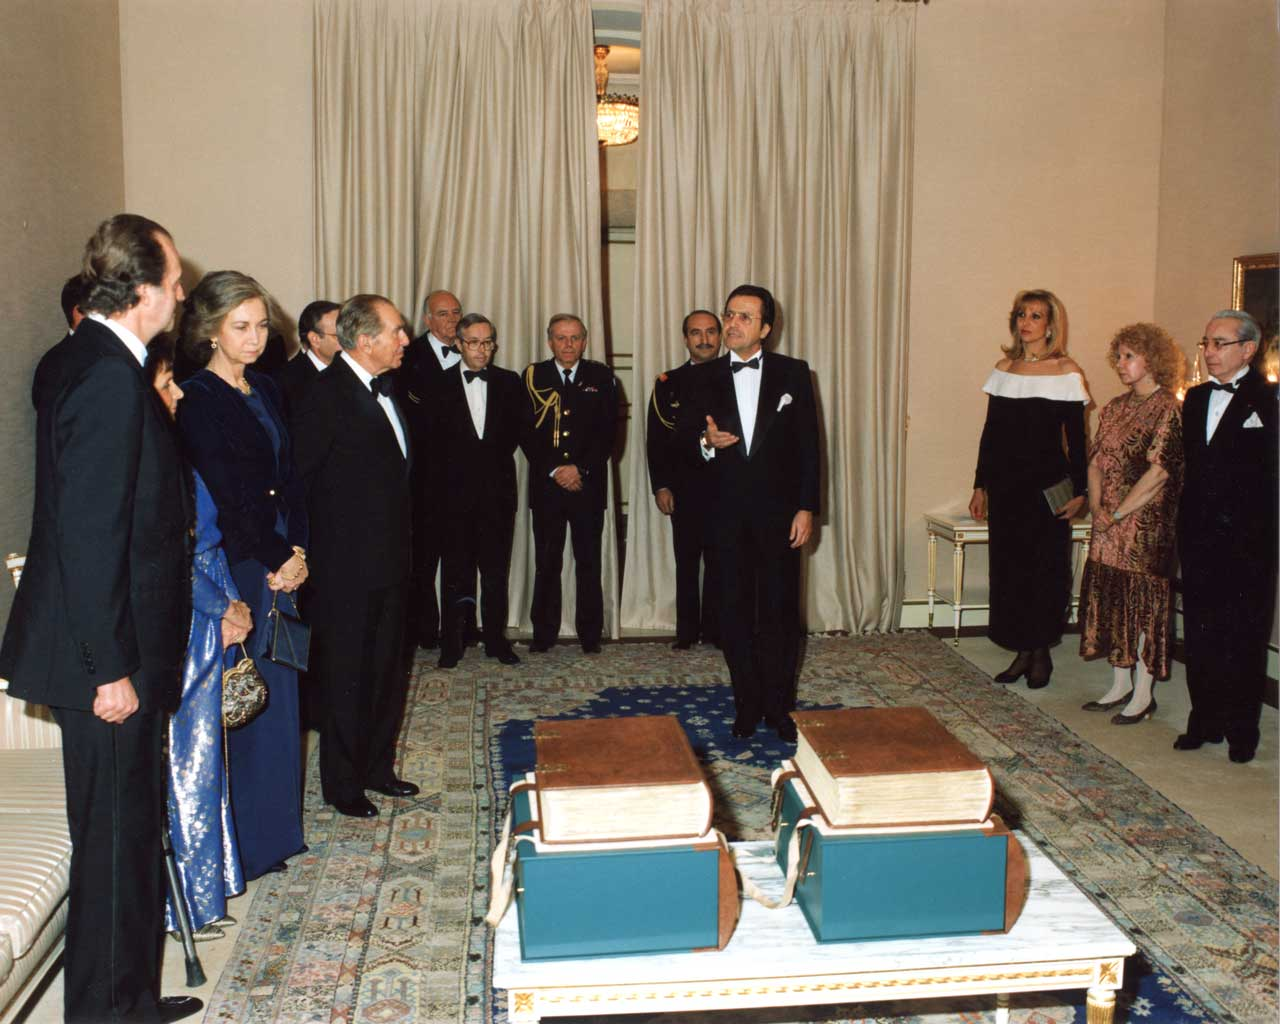 """Mauricio Hatchwell Toledano presents the first two copies of the Alba Bible to King Juan Carlos I of Spain and President Chaim Herzog of Israel  Image © Copyright <small>For use visit: <a href=""""https://www.facsimile-editions.com/copyright/"""">Copyright T&C Facsimile Editions Ltd</a></small>"""